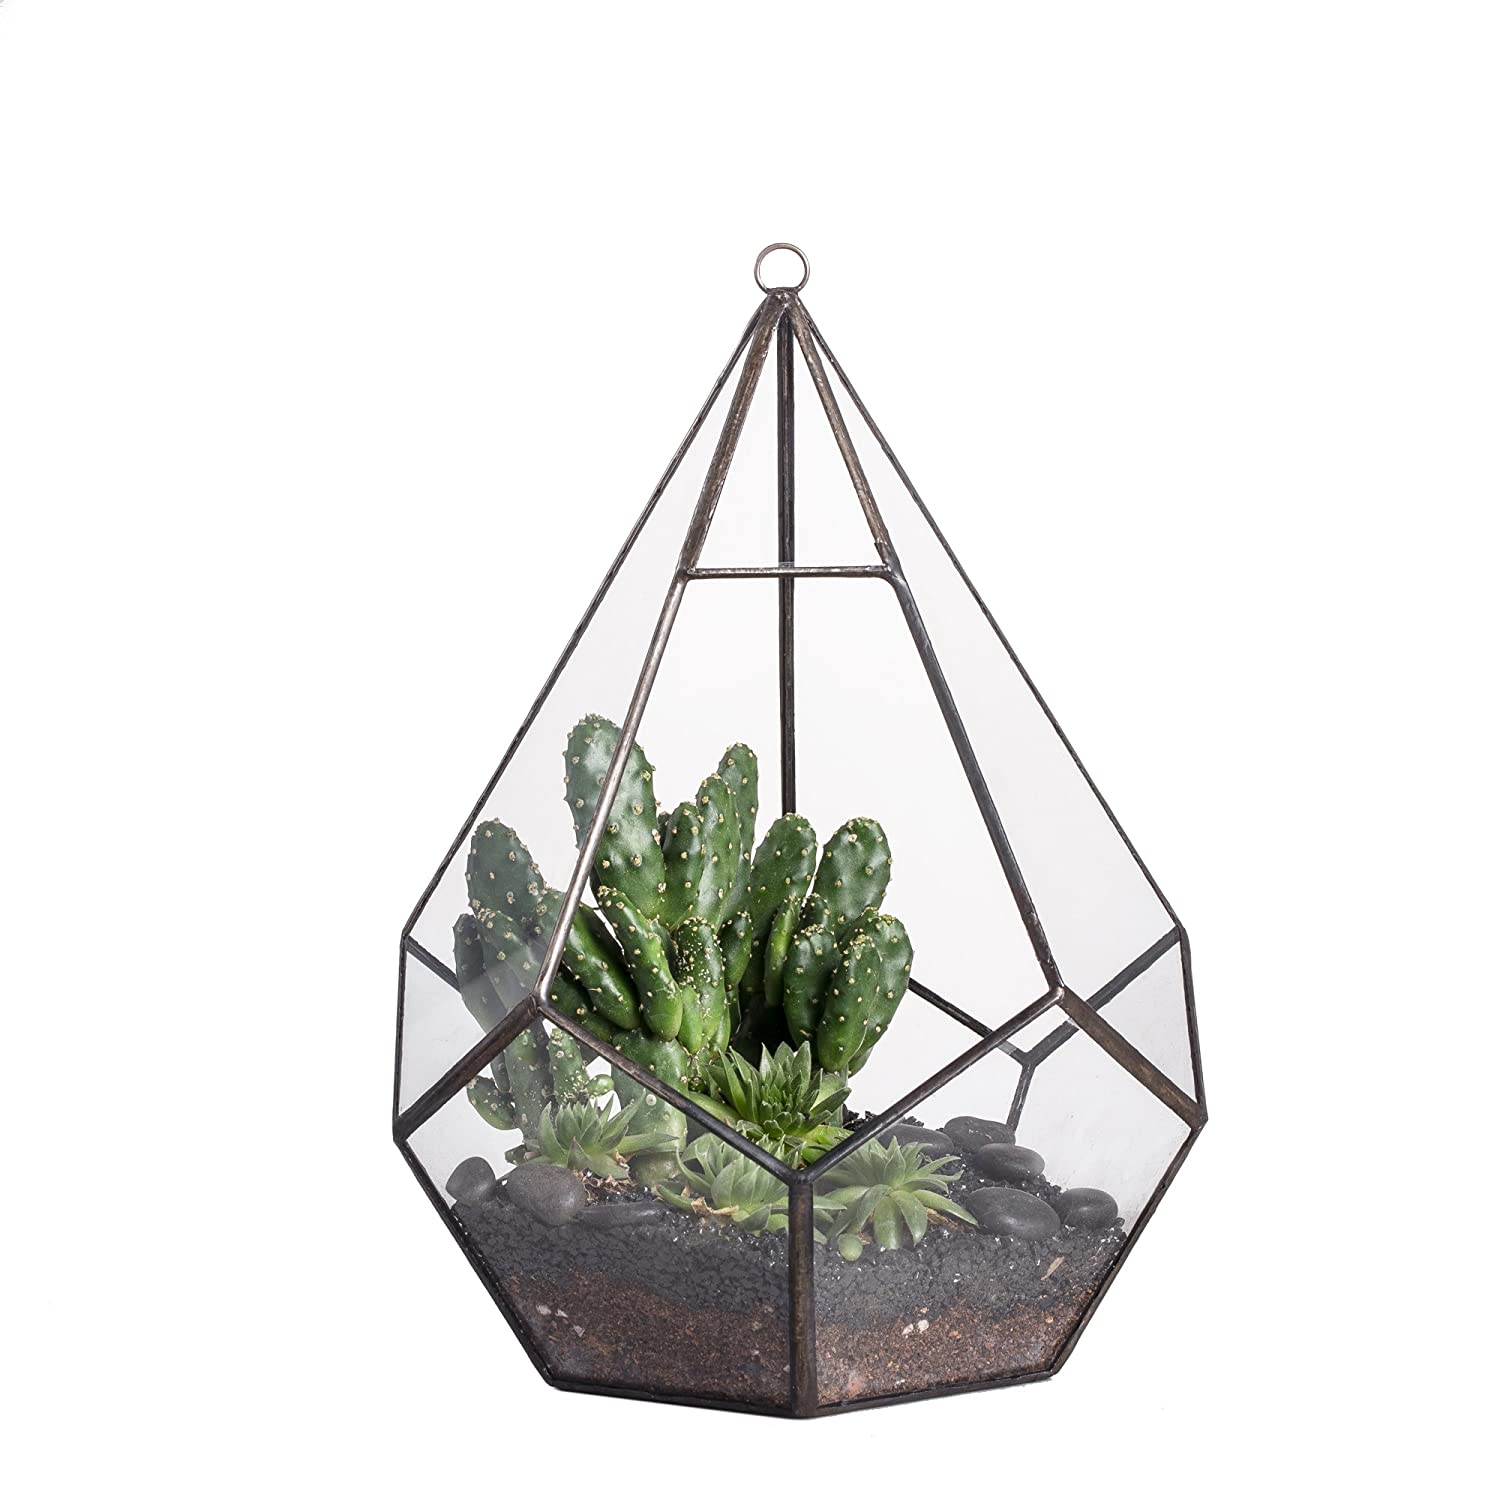 1 Face Opening Modern Wall Hanging Geometric Polyhedron Diamond Teardrops Shape Clear Glass Plant Terrarium Planter (5 Faces Triangle with 6 Faces Pentagon) 6.8 x 6.8 x 8.6inches (9inches with loop)